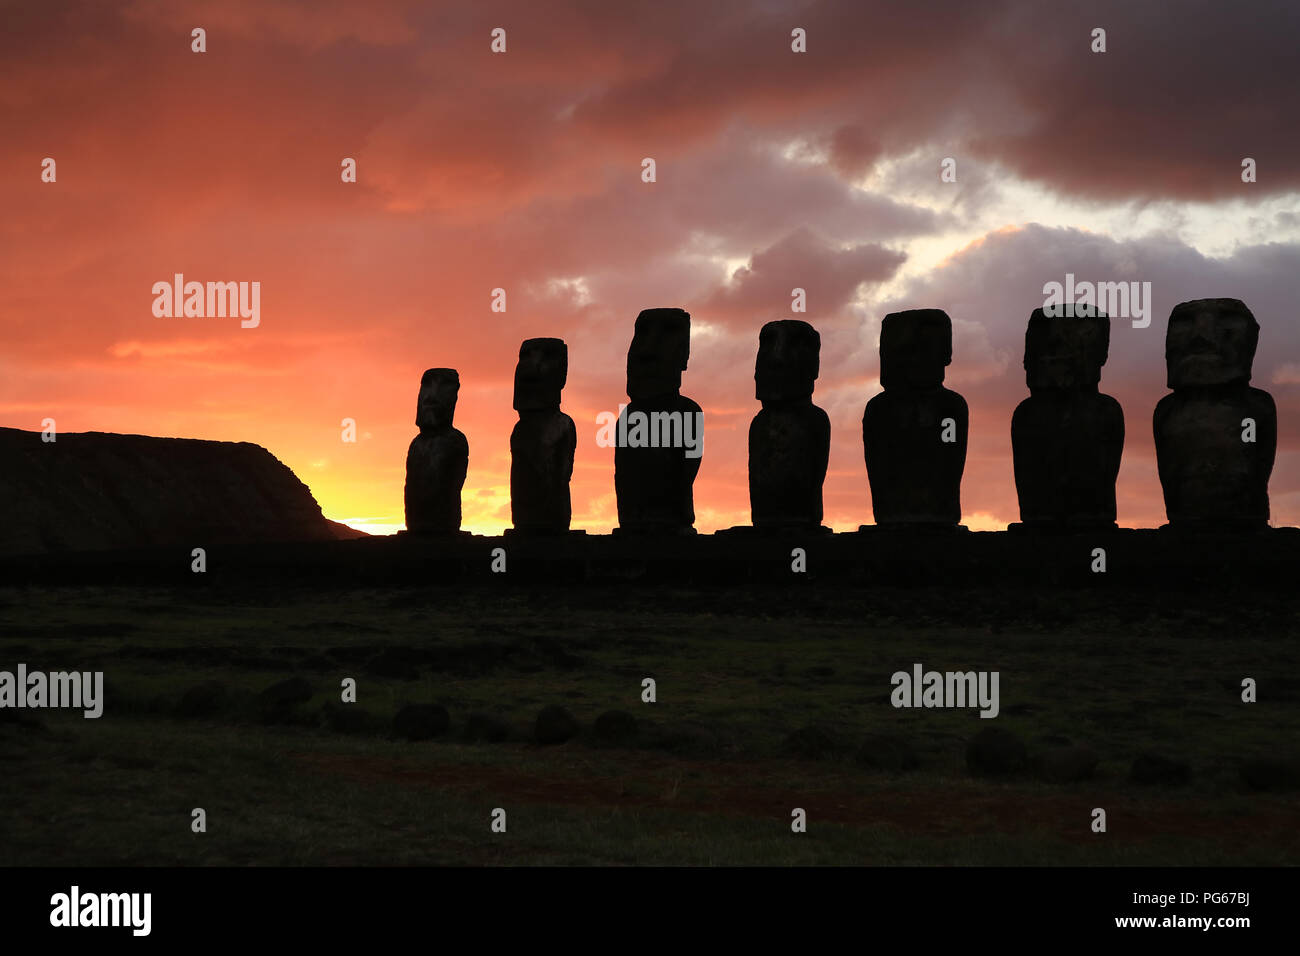 Silhouette of huge Moai statues of Ahu Tongariki against beautiful sunrise cloudy sky, Archaeological site in Easter Island, Chile Stock Photo